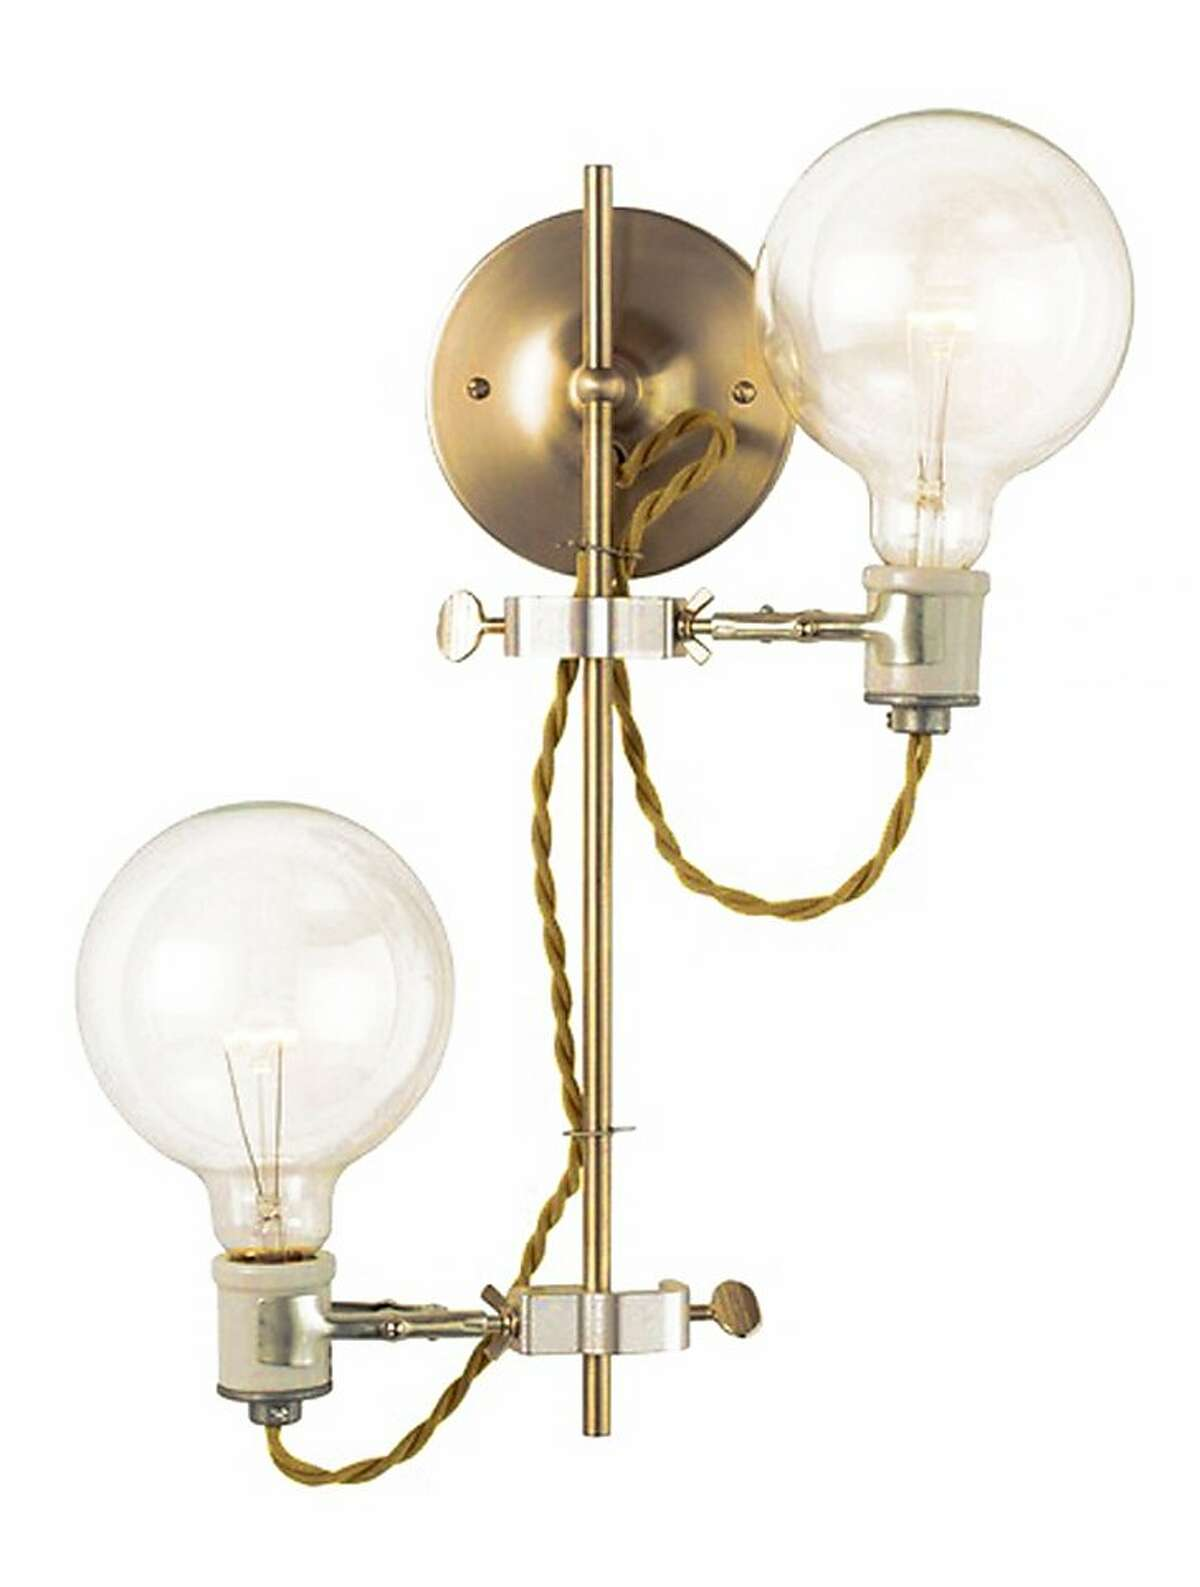 Brass: I am really loving brass right now. There are some amazing not-your-grandmother s-brass-hardware, faucets and lighting out there. I even created an entire inspiration board of just brass lighting.